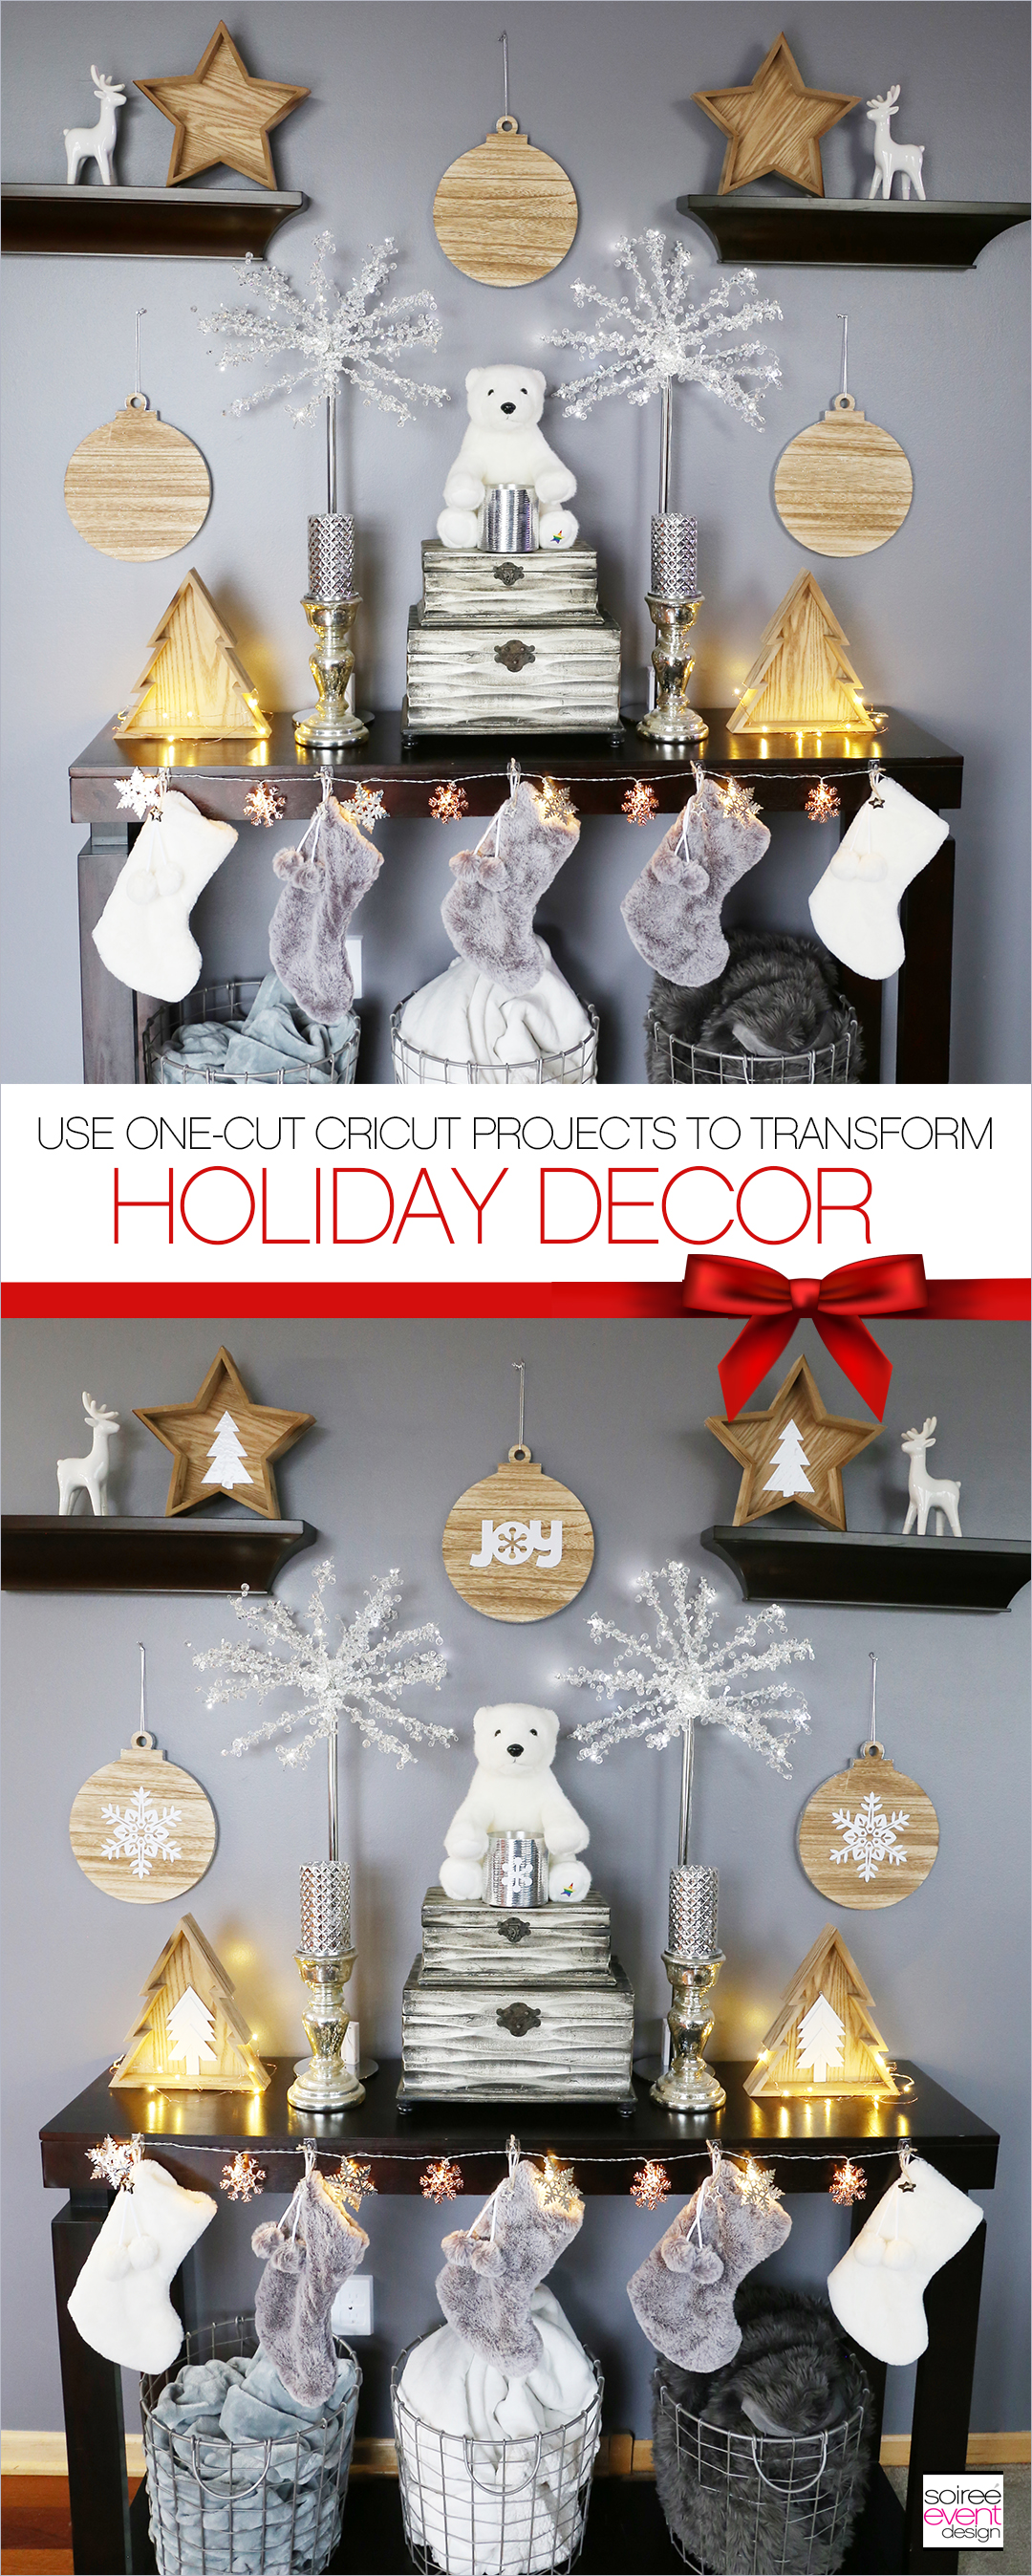 Make Farmhouse Holiday Decorations with Cricut